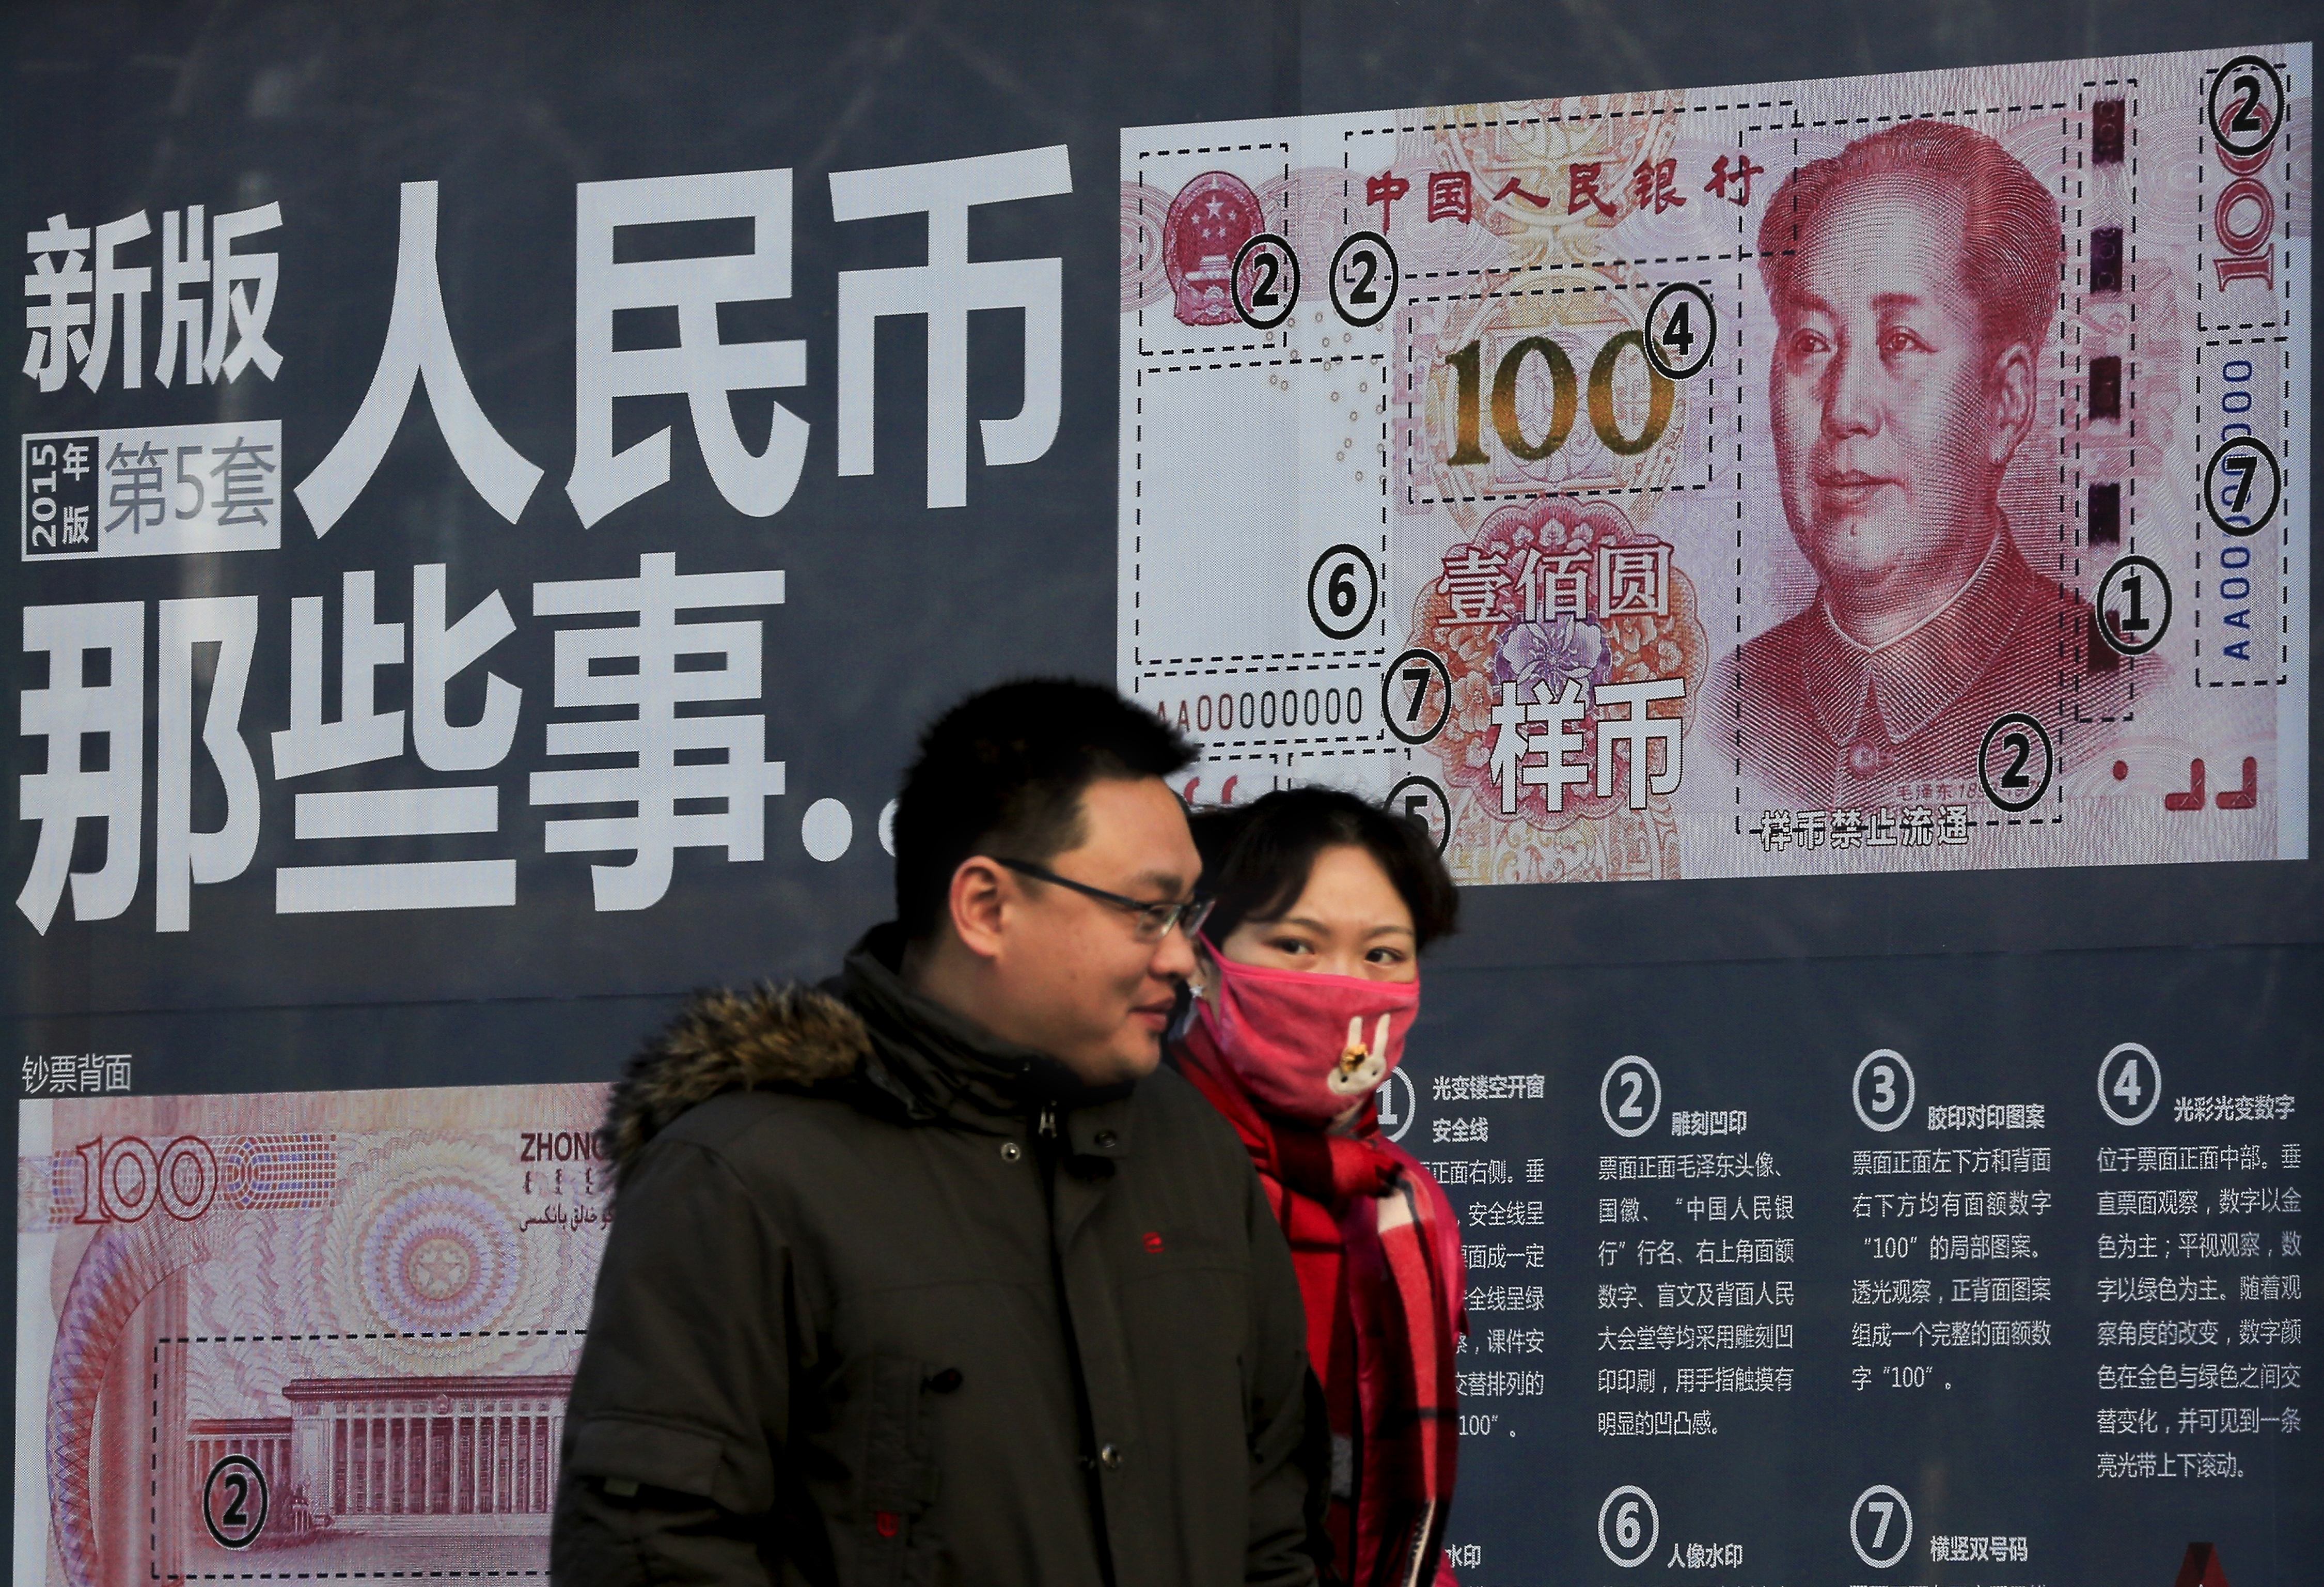 A couple walk past a display showing the security features of the new 100 Yuan note in Beijing, Monday, Jan. 11, 2016.